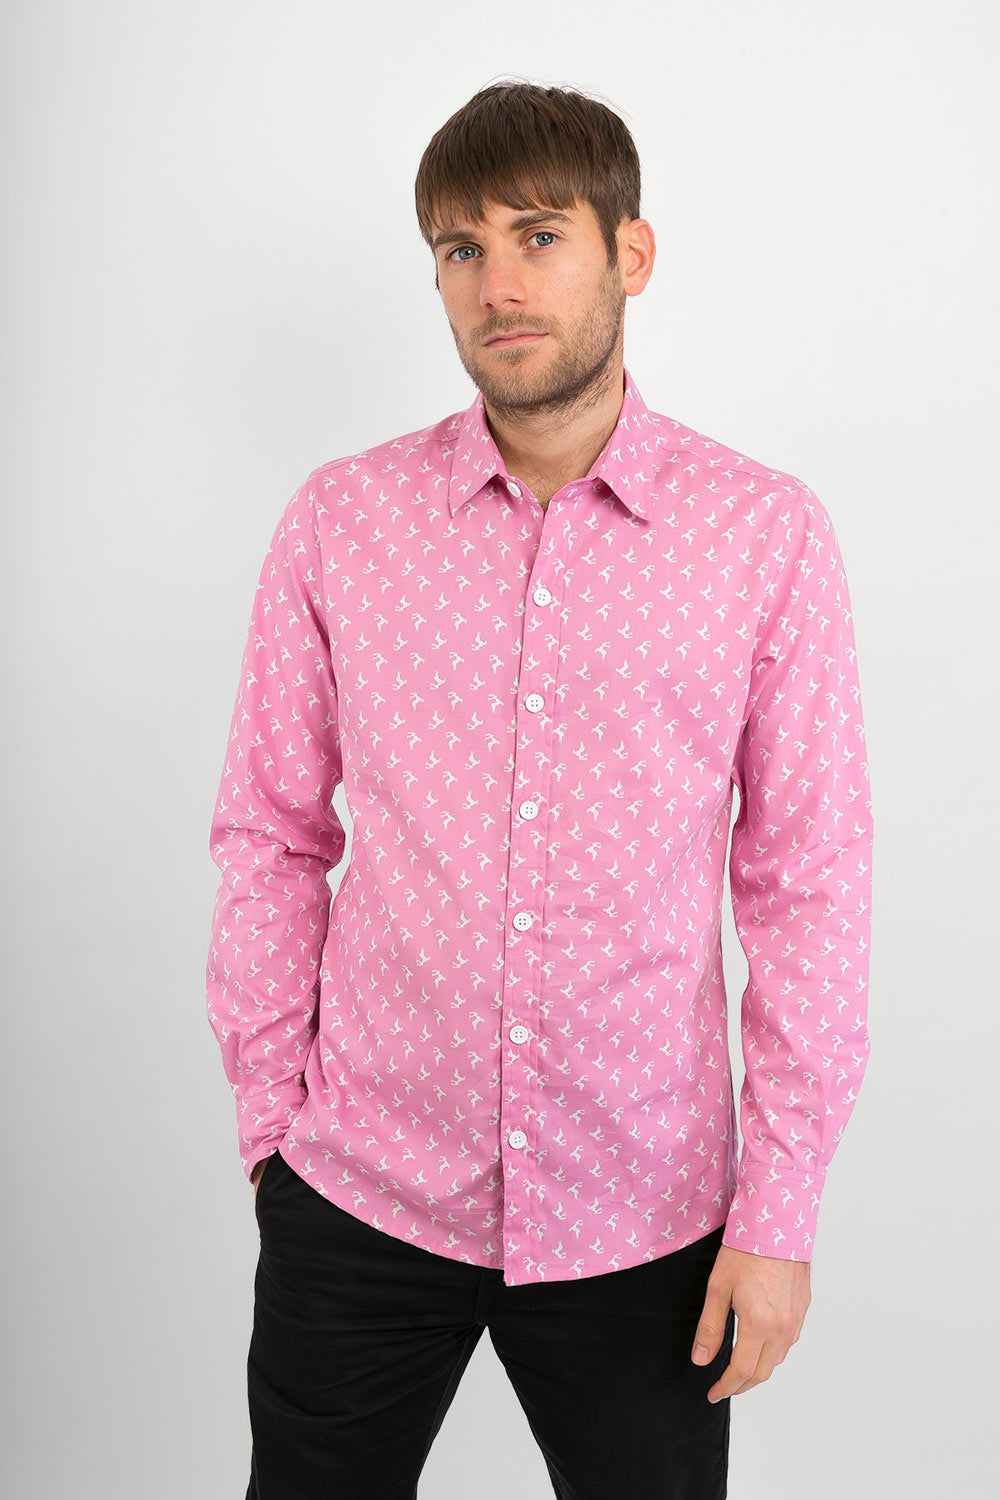 Pink Reindeer Print Cotton Slim Fit Mens Shirt Long Sleeve - Avalonia, Avalonia - Avalonia